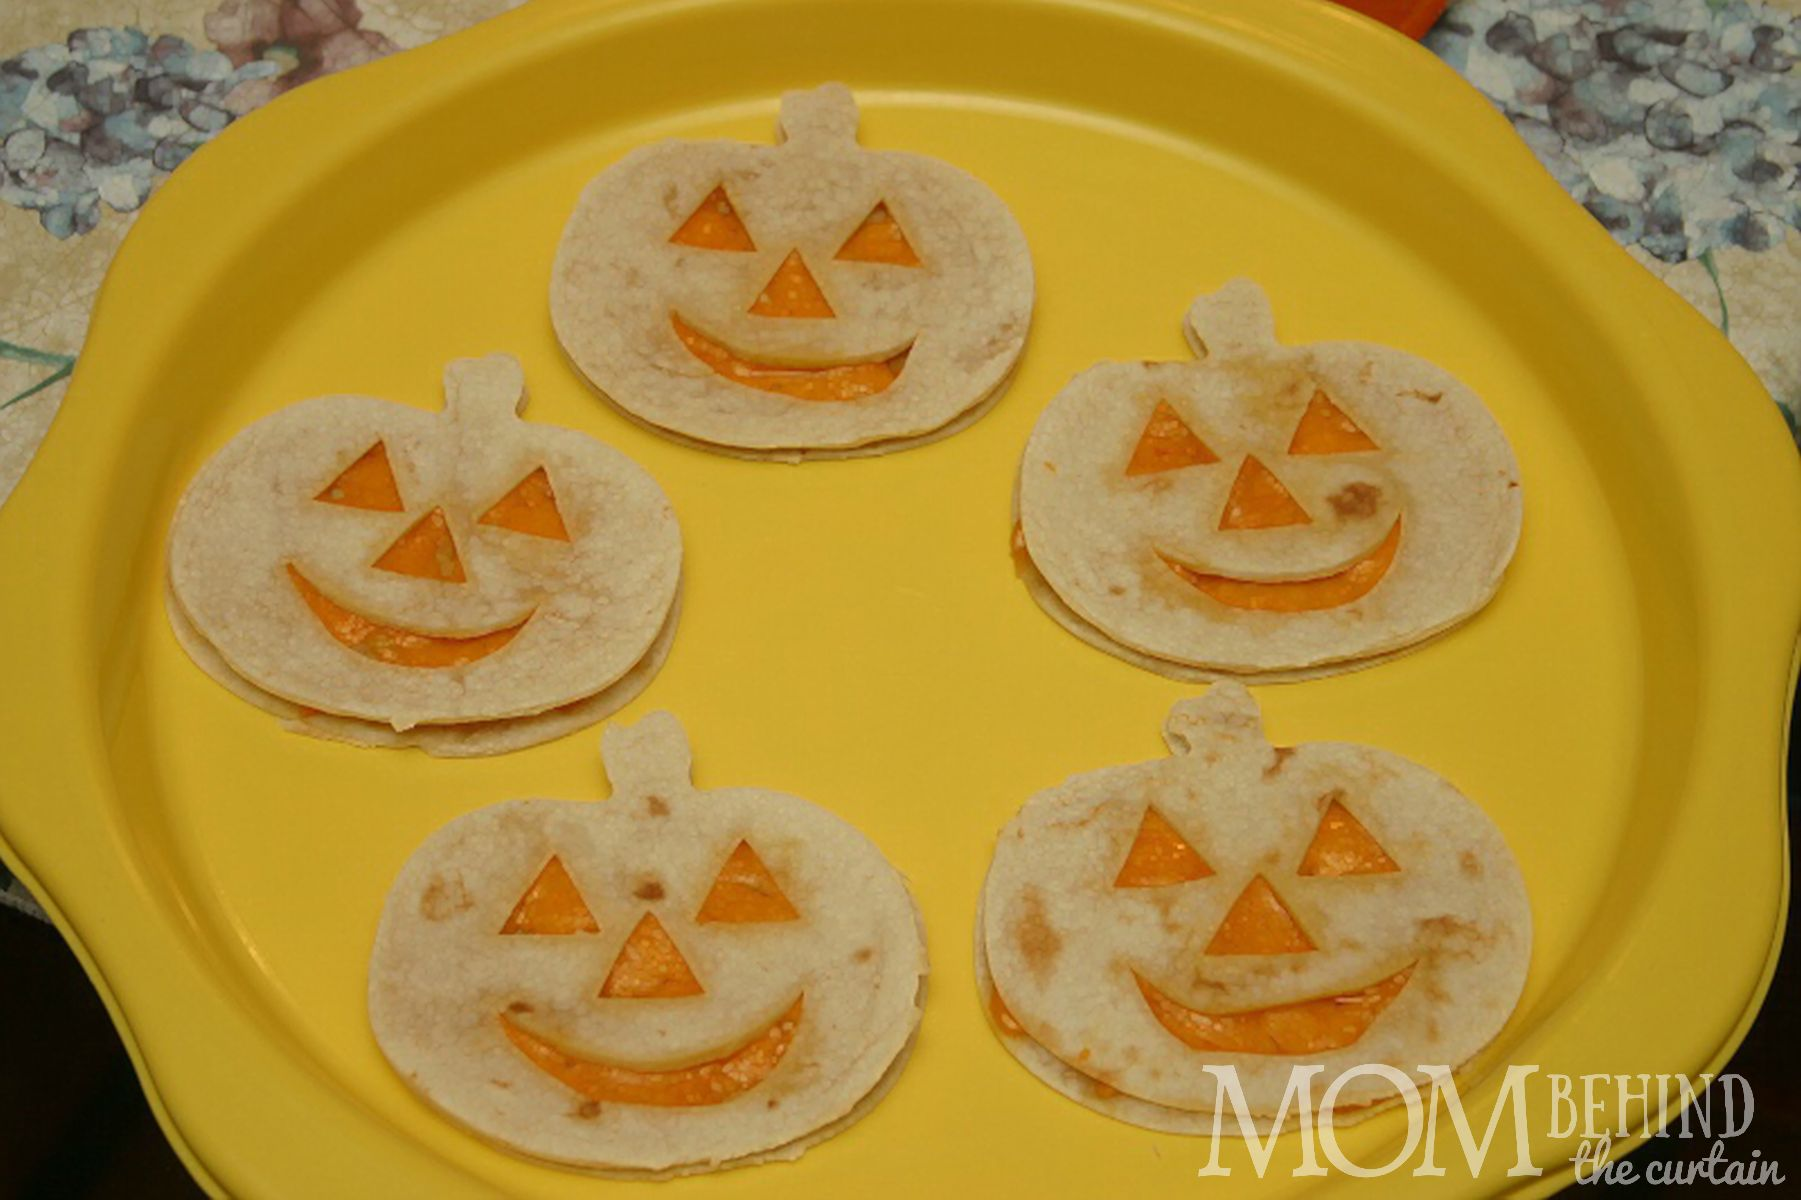 jack o lantern quesadillas with stems - Halloween Party Food - ideas for kids party that are easy. And sometimes healthy! Okay, is anything really healthy besides kale? These are at least healthier than the candy that's - let's face it - going to be consumed in massive quantities!